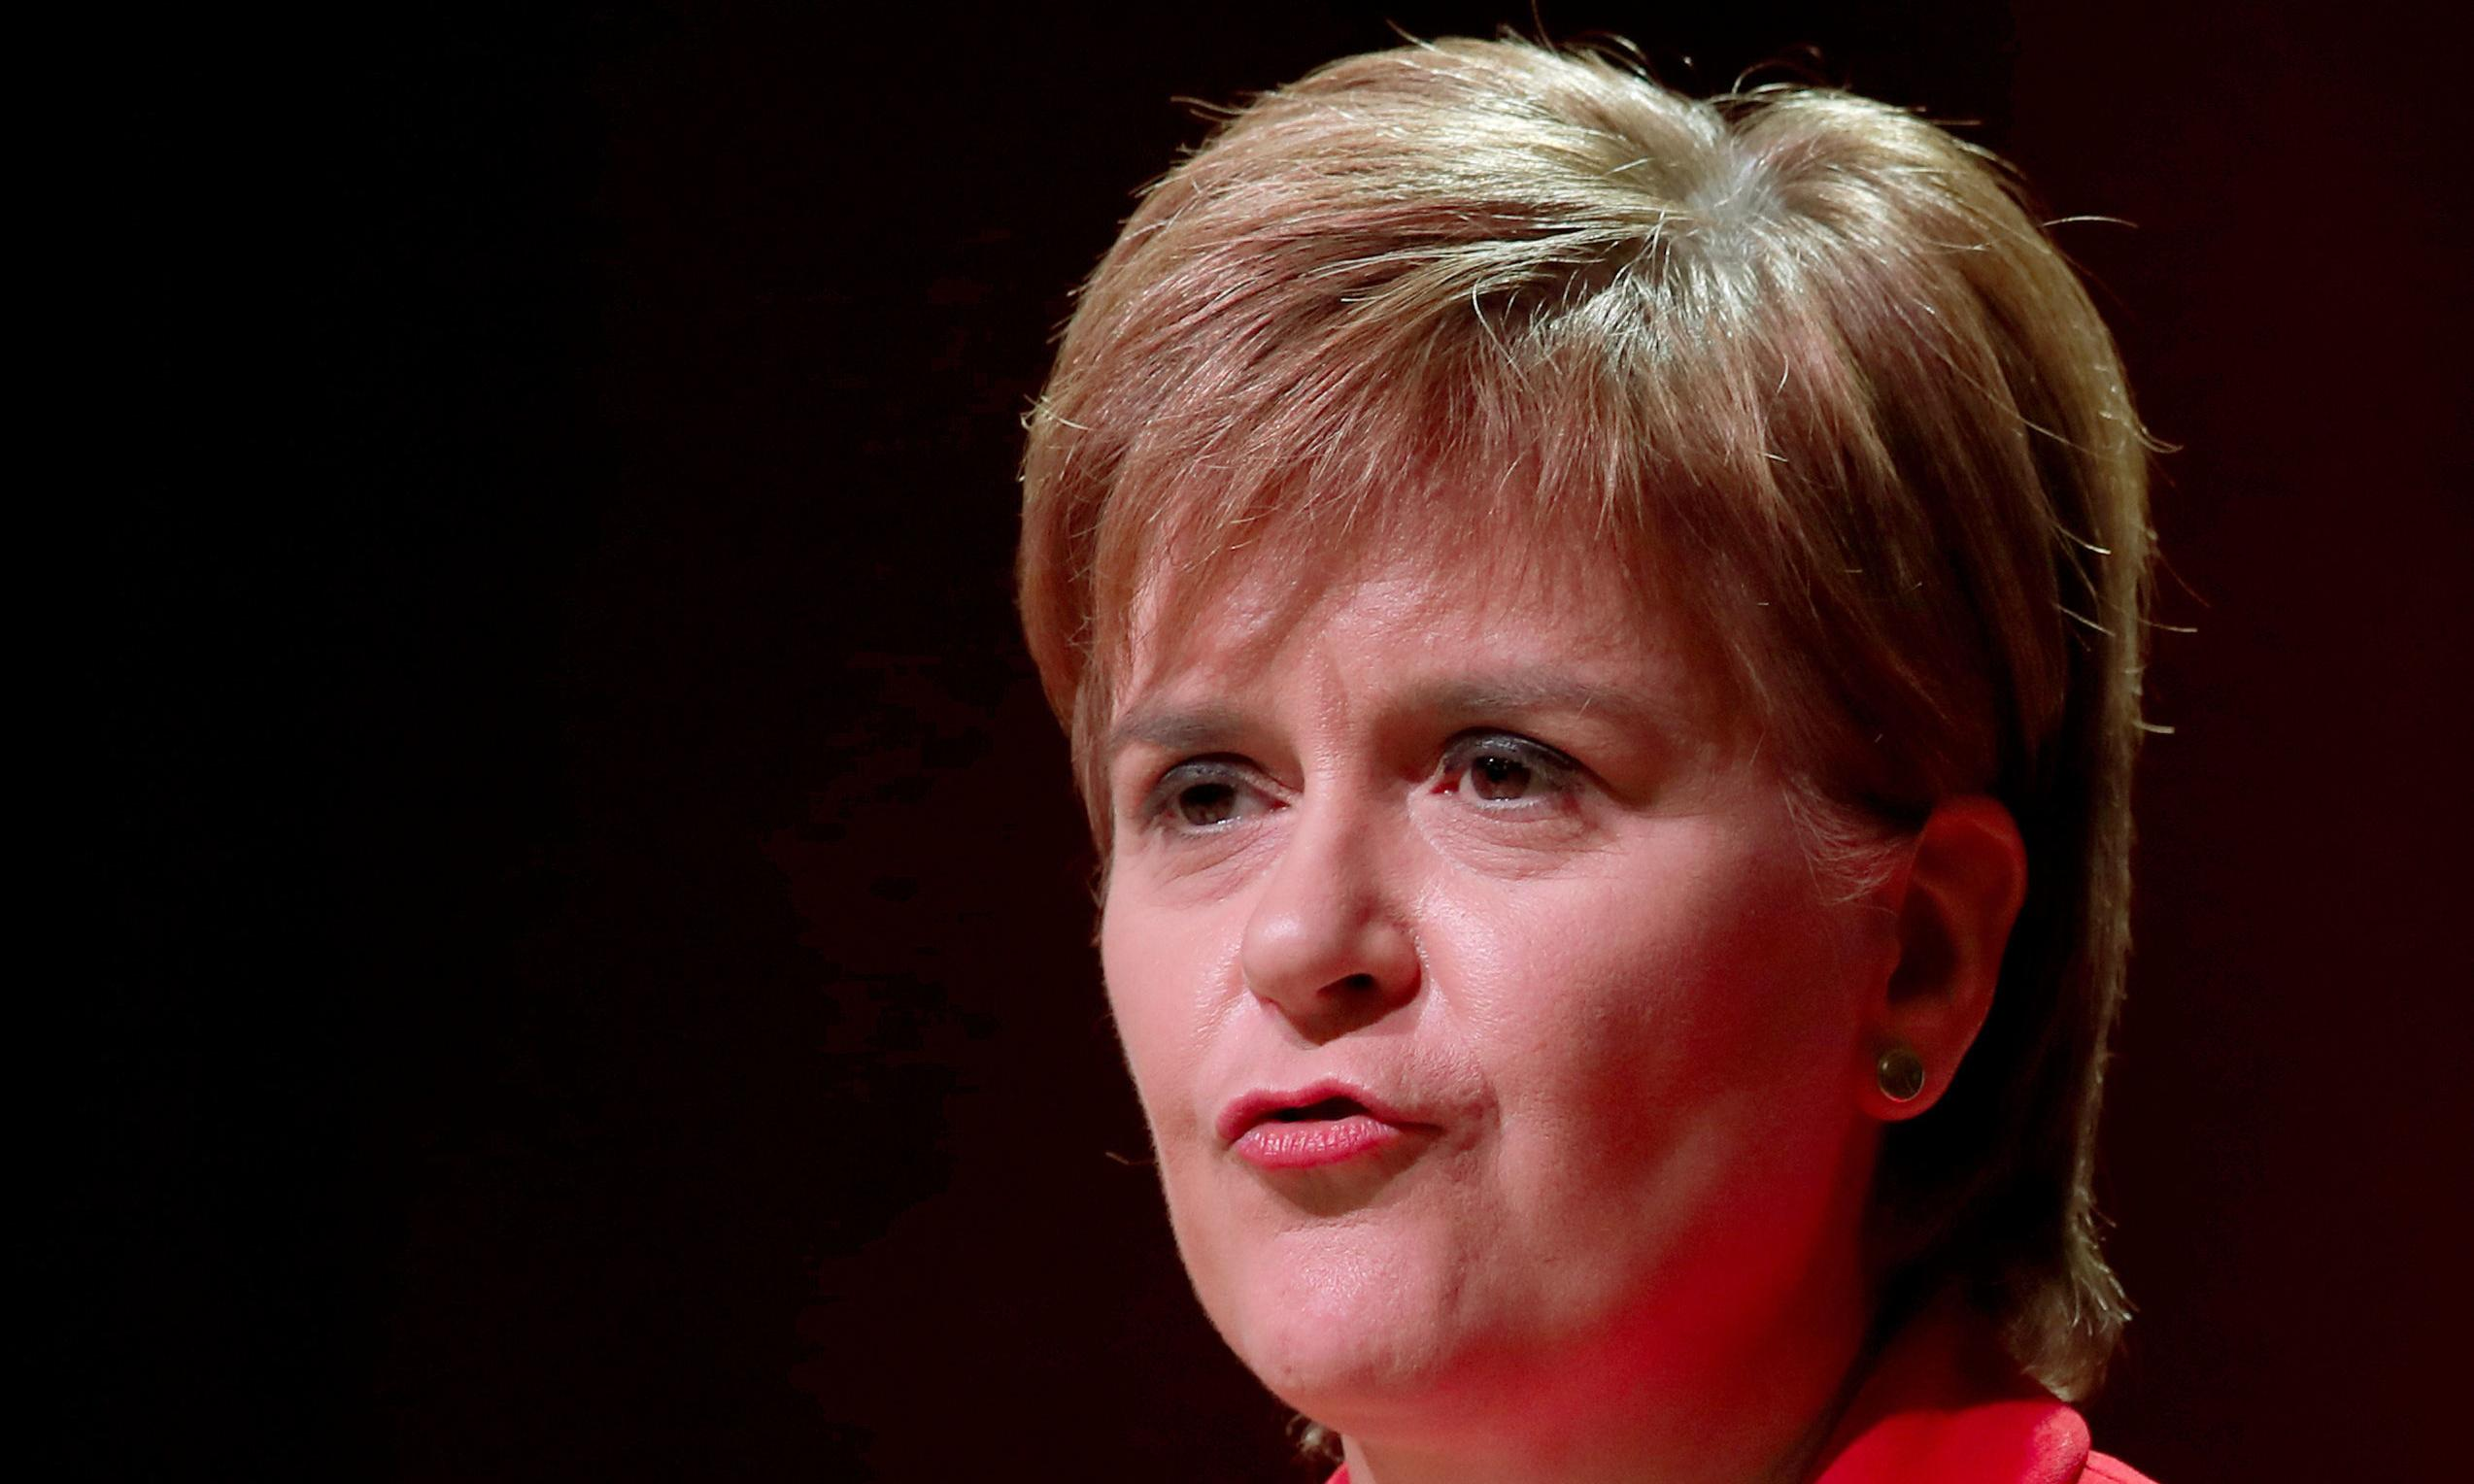 SNP politicians warn against 'rushing' change to gender act